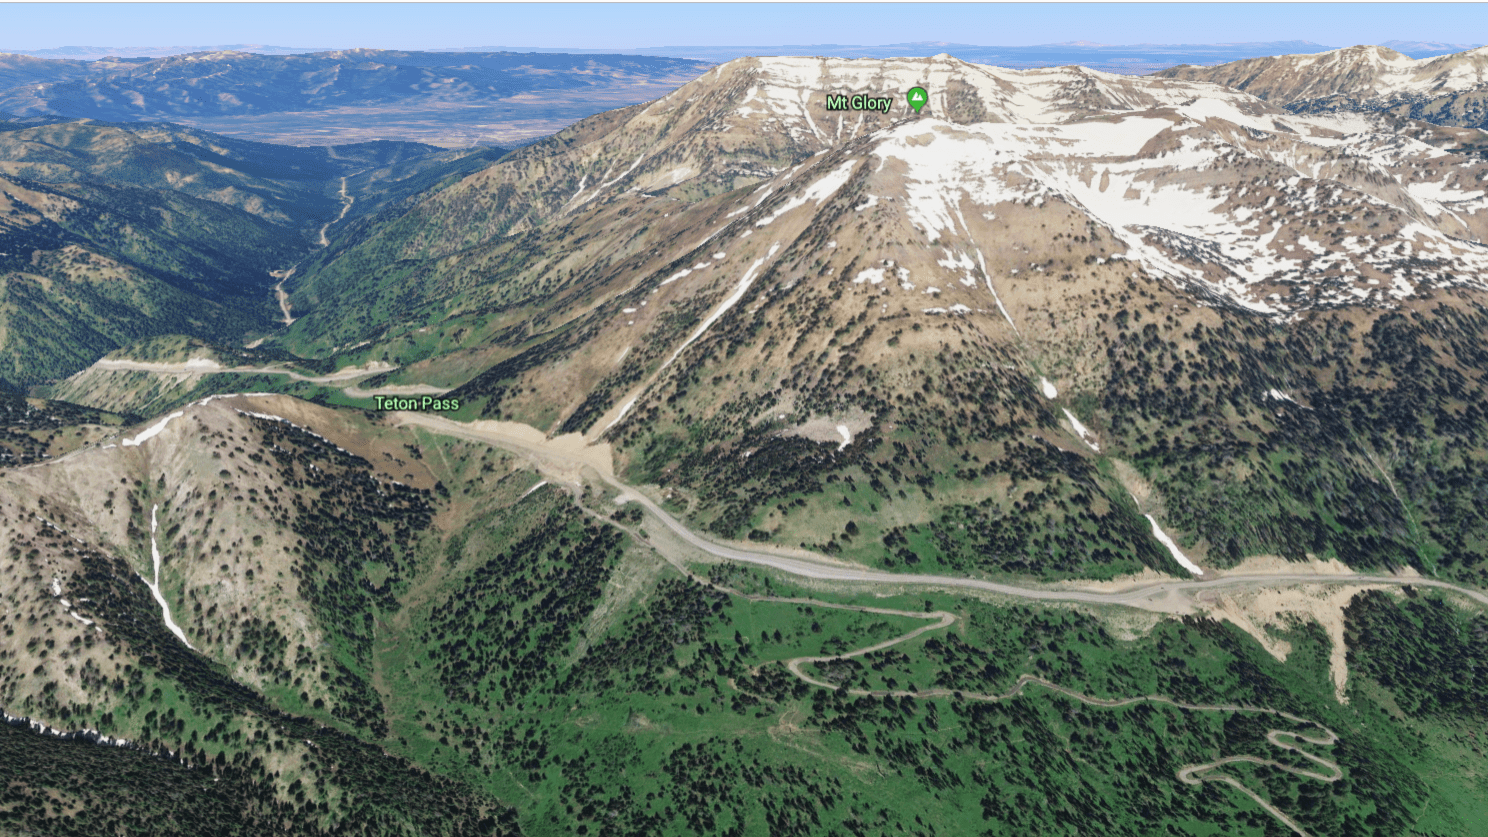 Avalanche paths over the highway